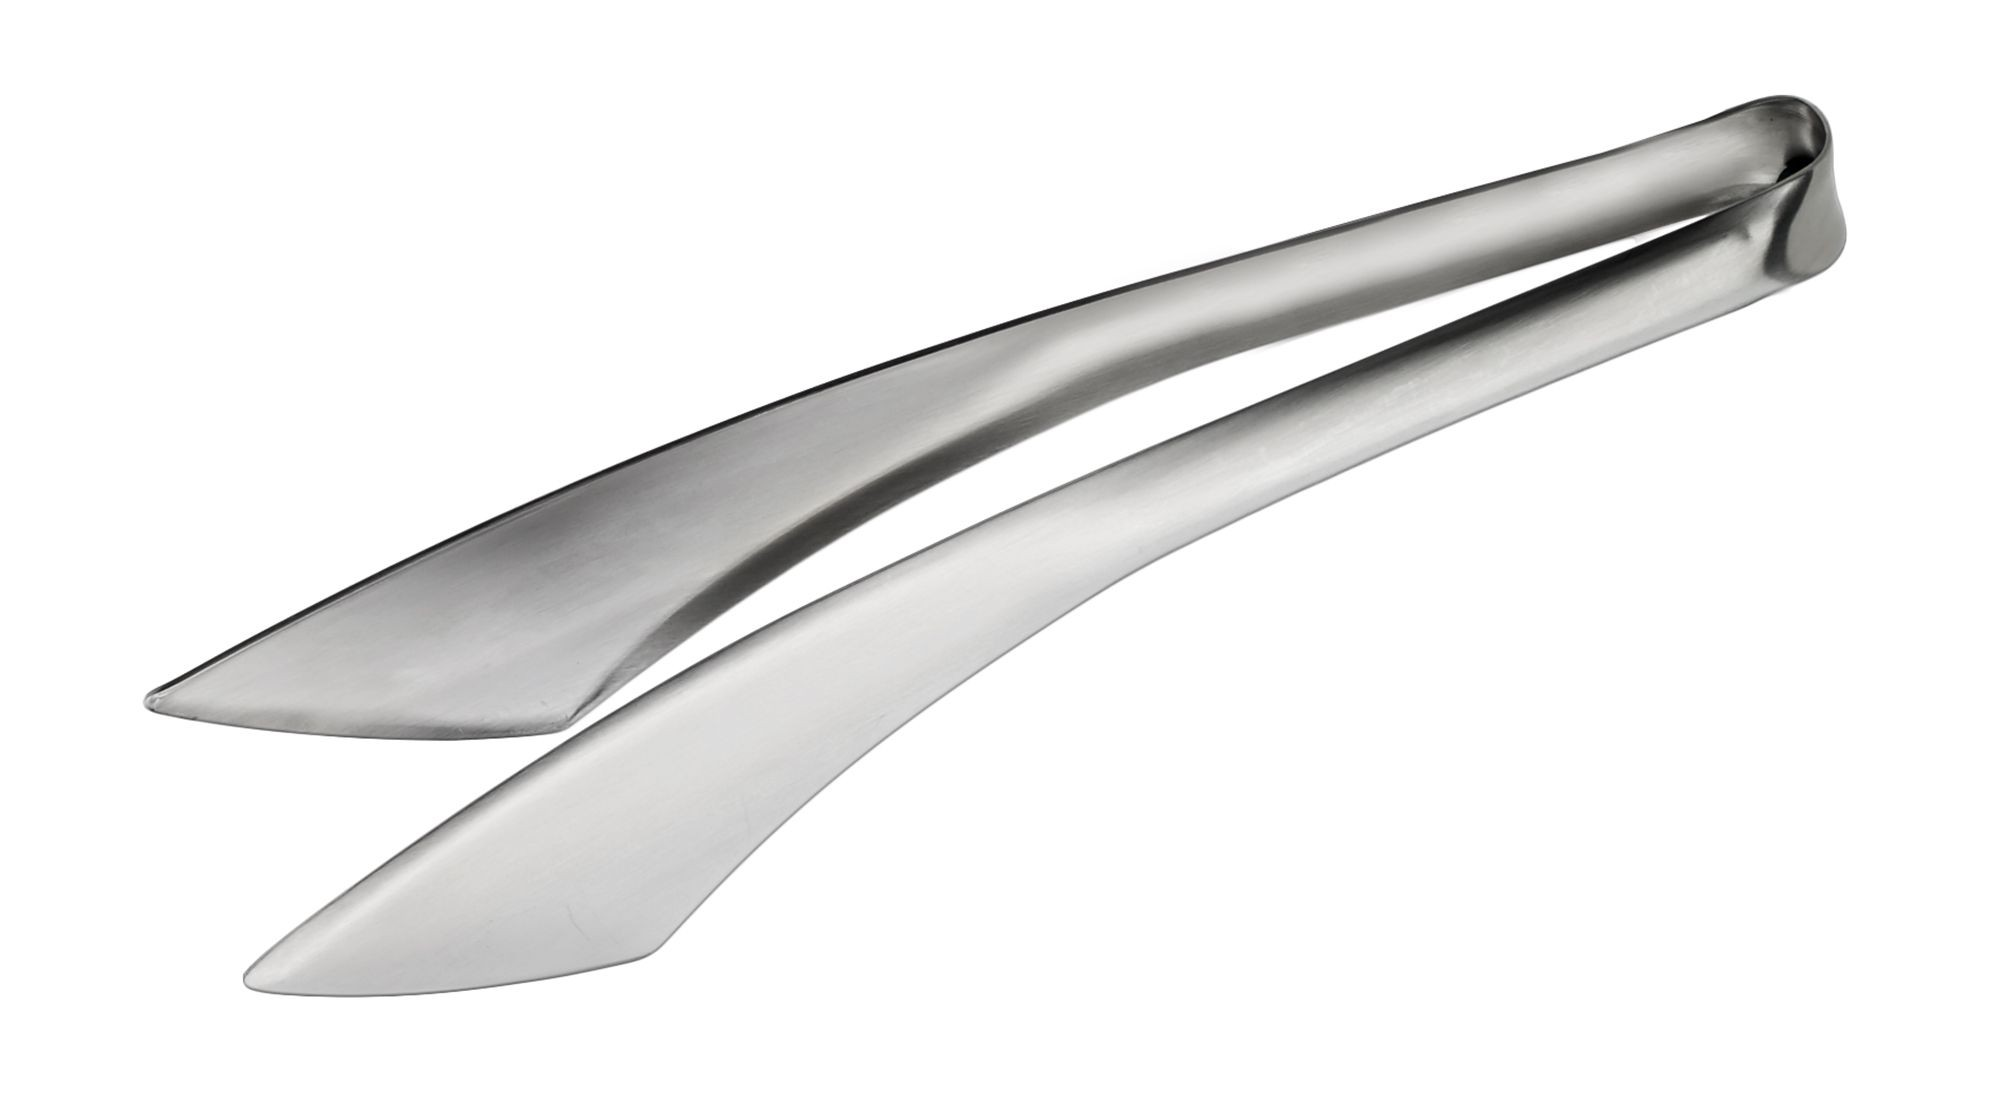 """Winco STH-8 Stainless Steel Serving Tongs with Satin Finish 8-1/2"""""""